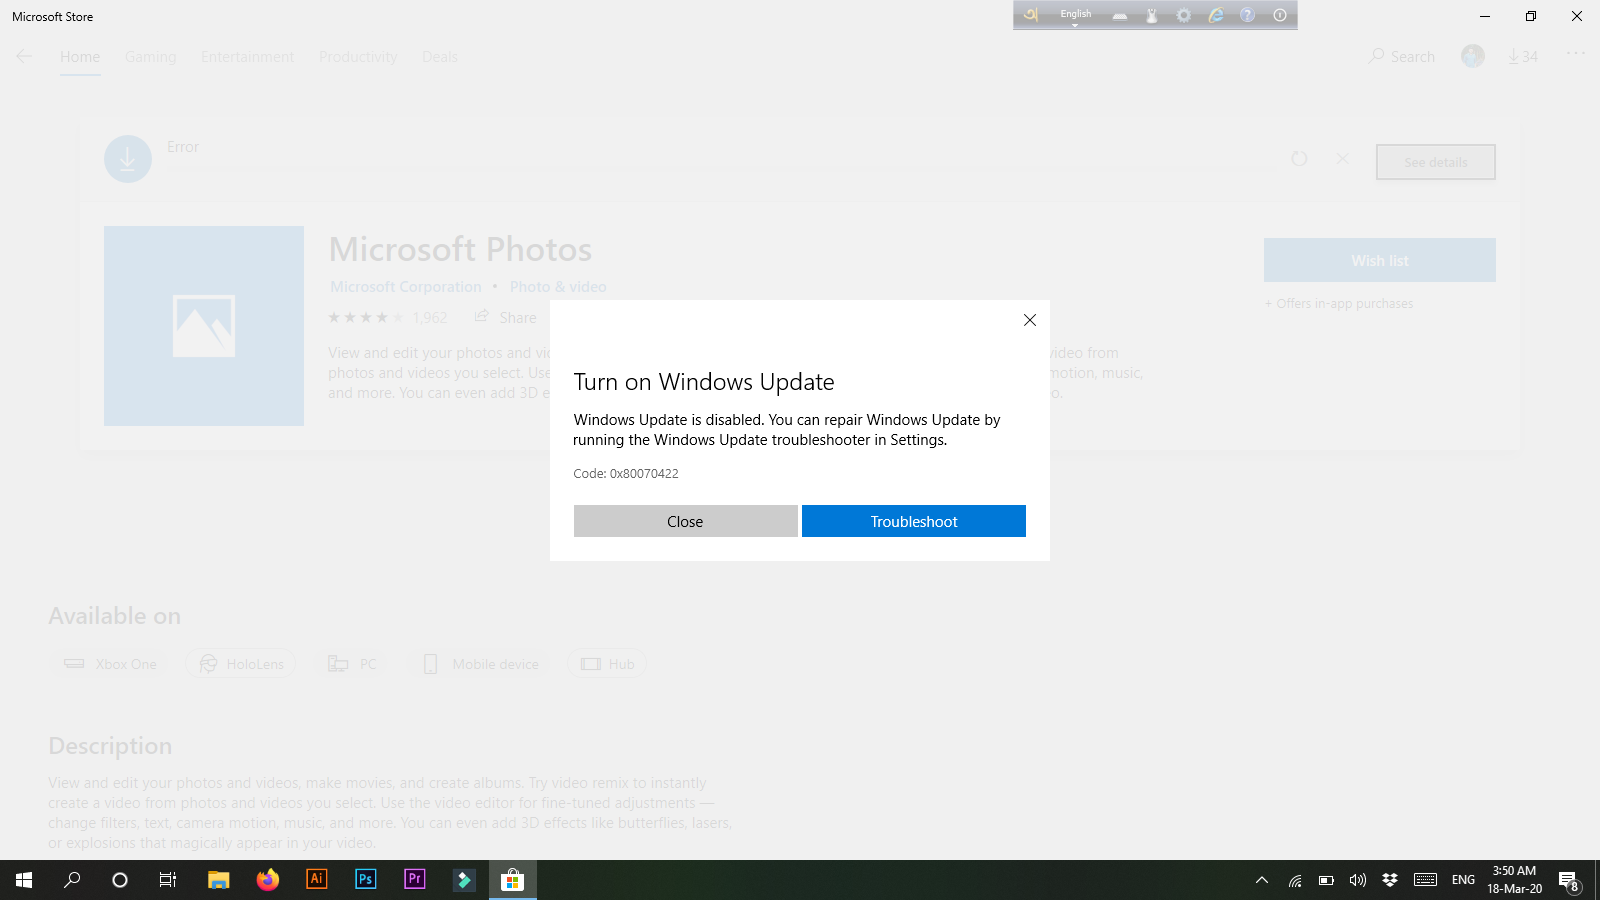 Microsoft Store Apps are not working. c6497f59-2293-4a5f-acda-6d03abbfa60c?upload=true.png